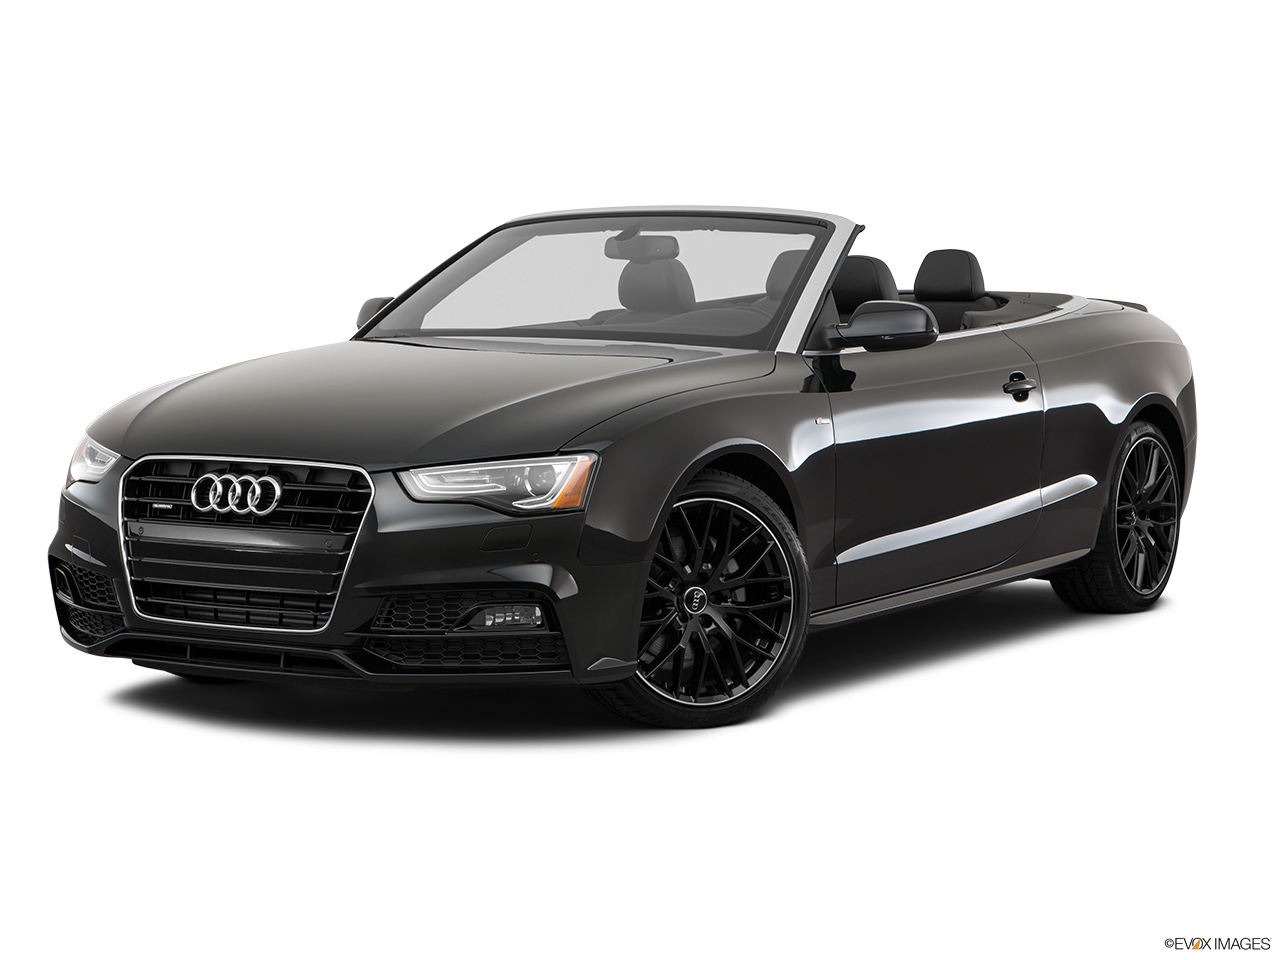 2017 Audi A5 Sport Cabriolet 2.0 TFSI Front angle medium view.